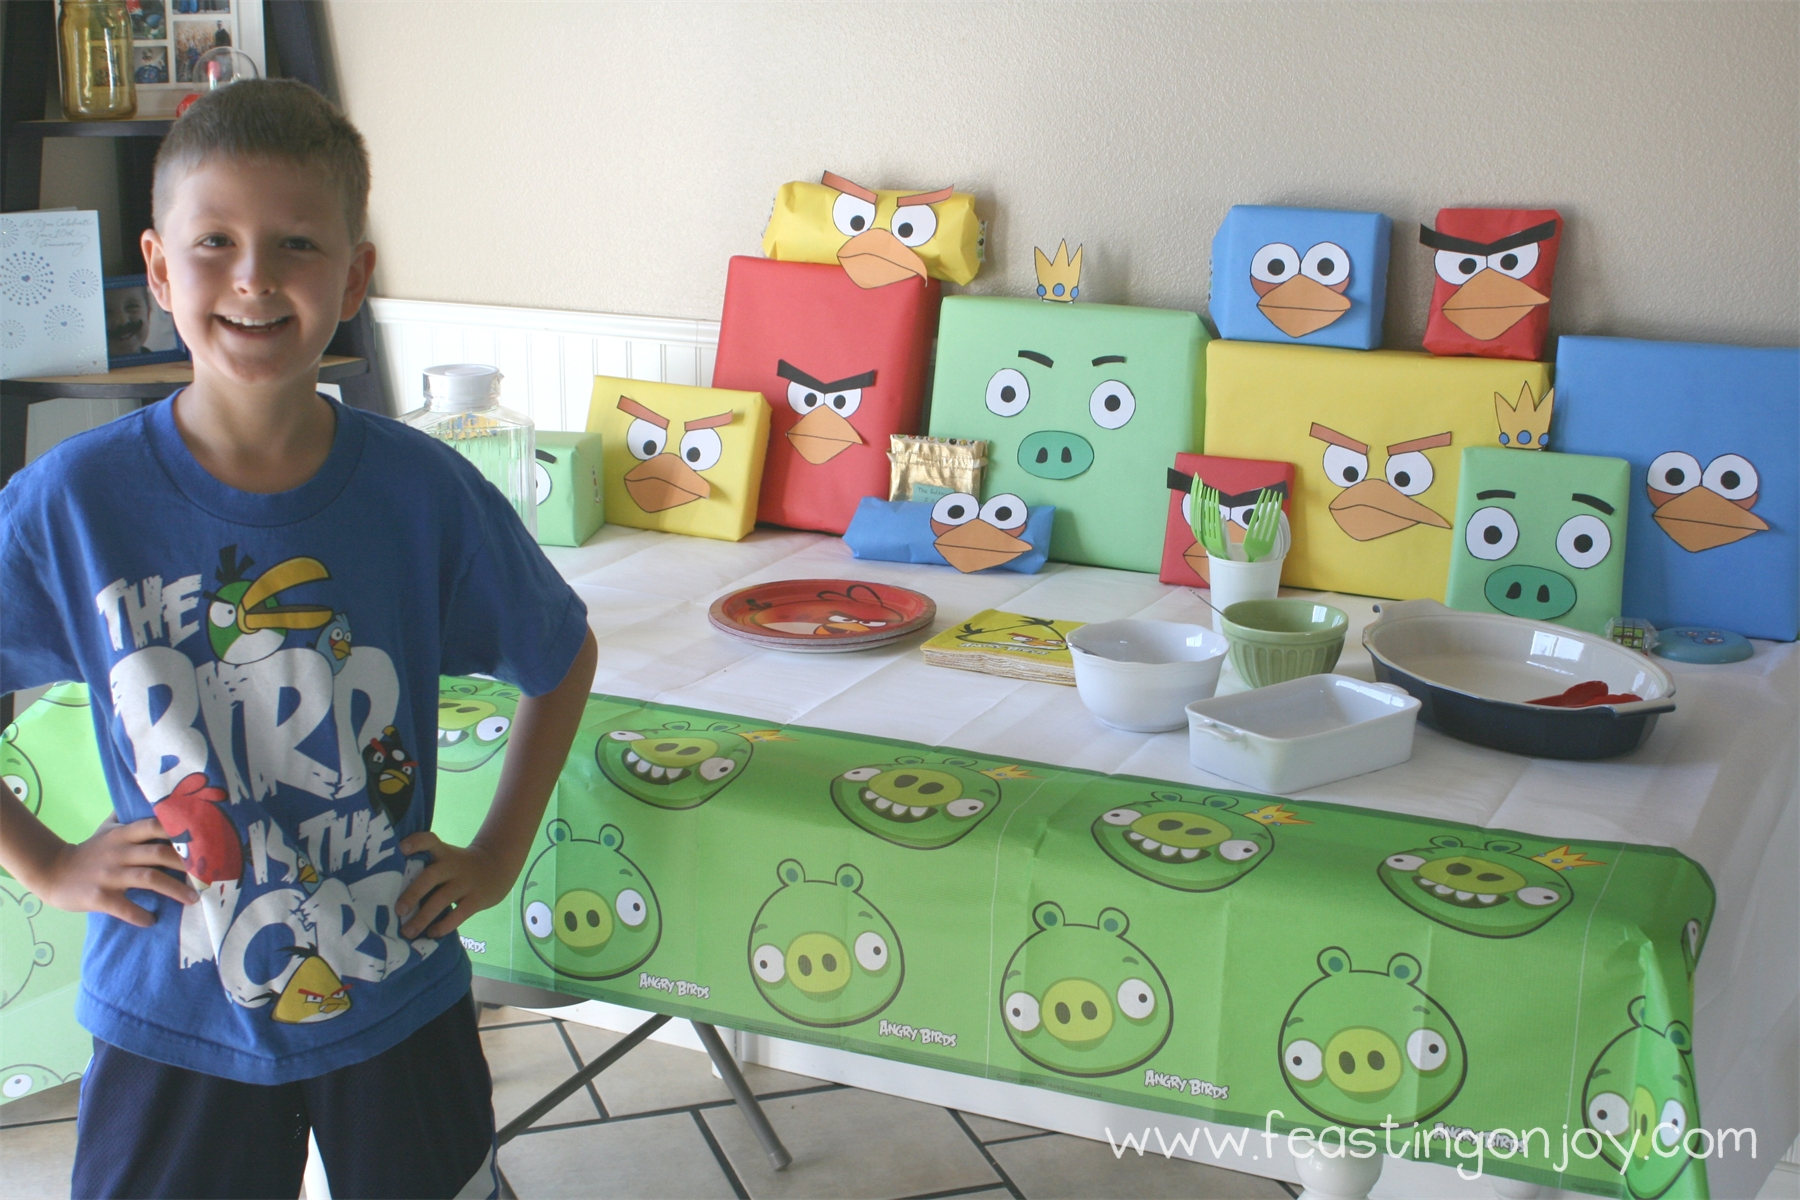 Angry birds birthday party feasting on joy for Angry birds party decoration ideas